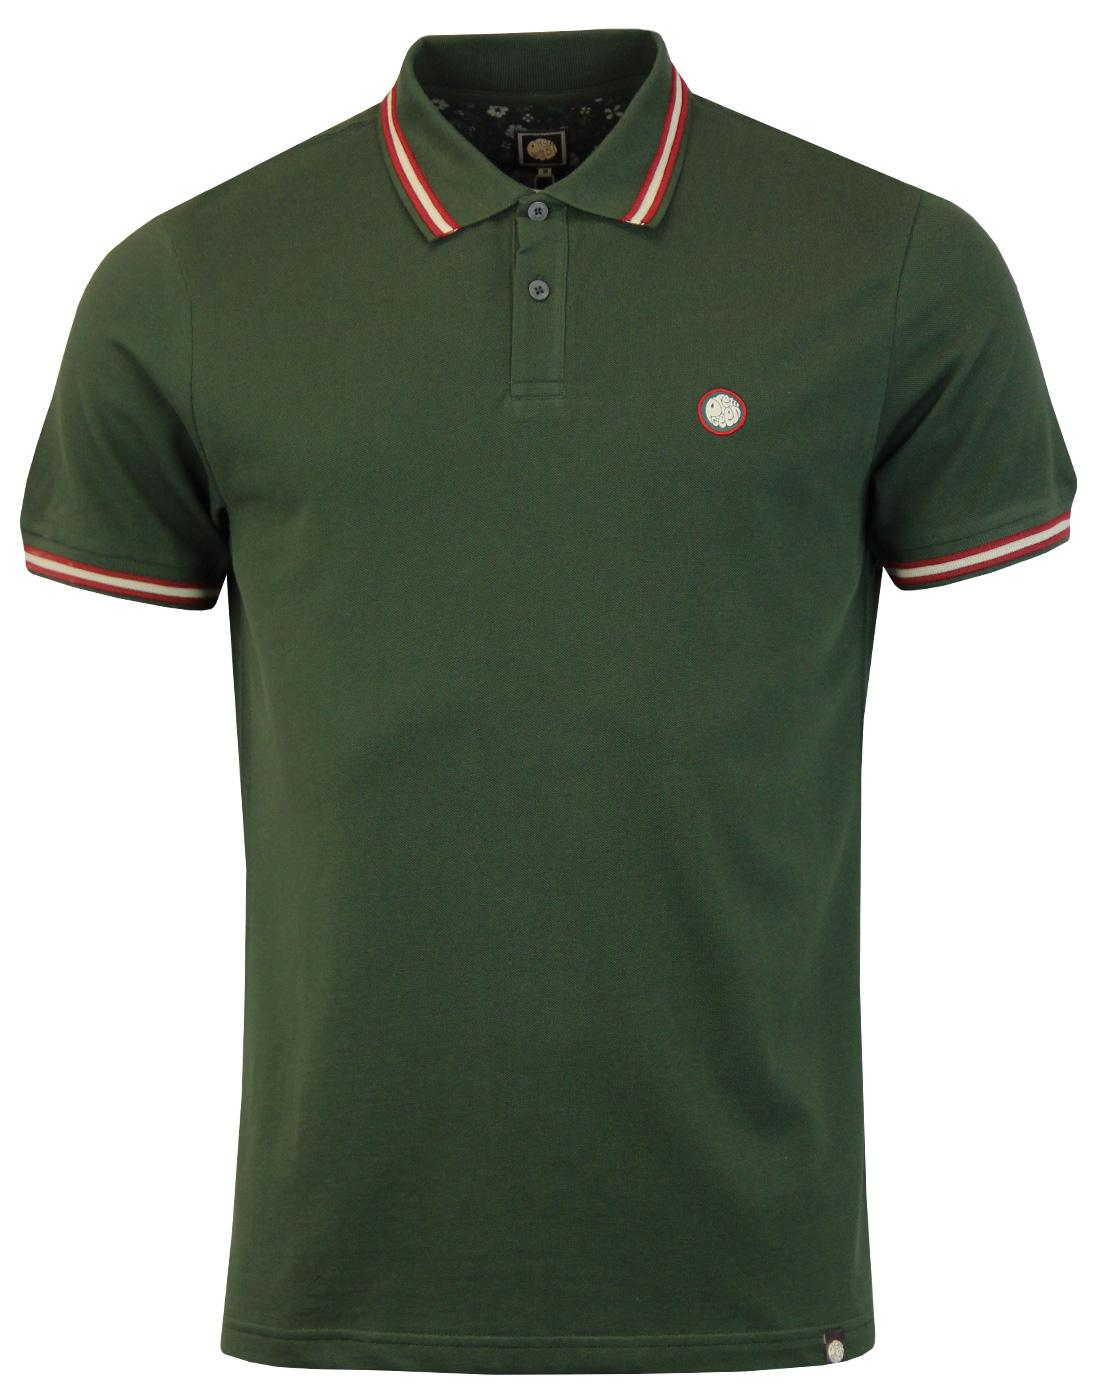 Bennett PRETTY GREEN Retro Mod Rib Tipped Polo DG